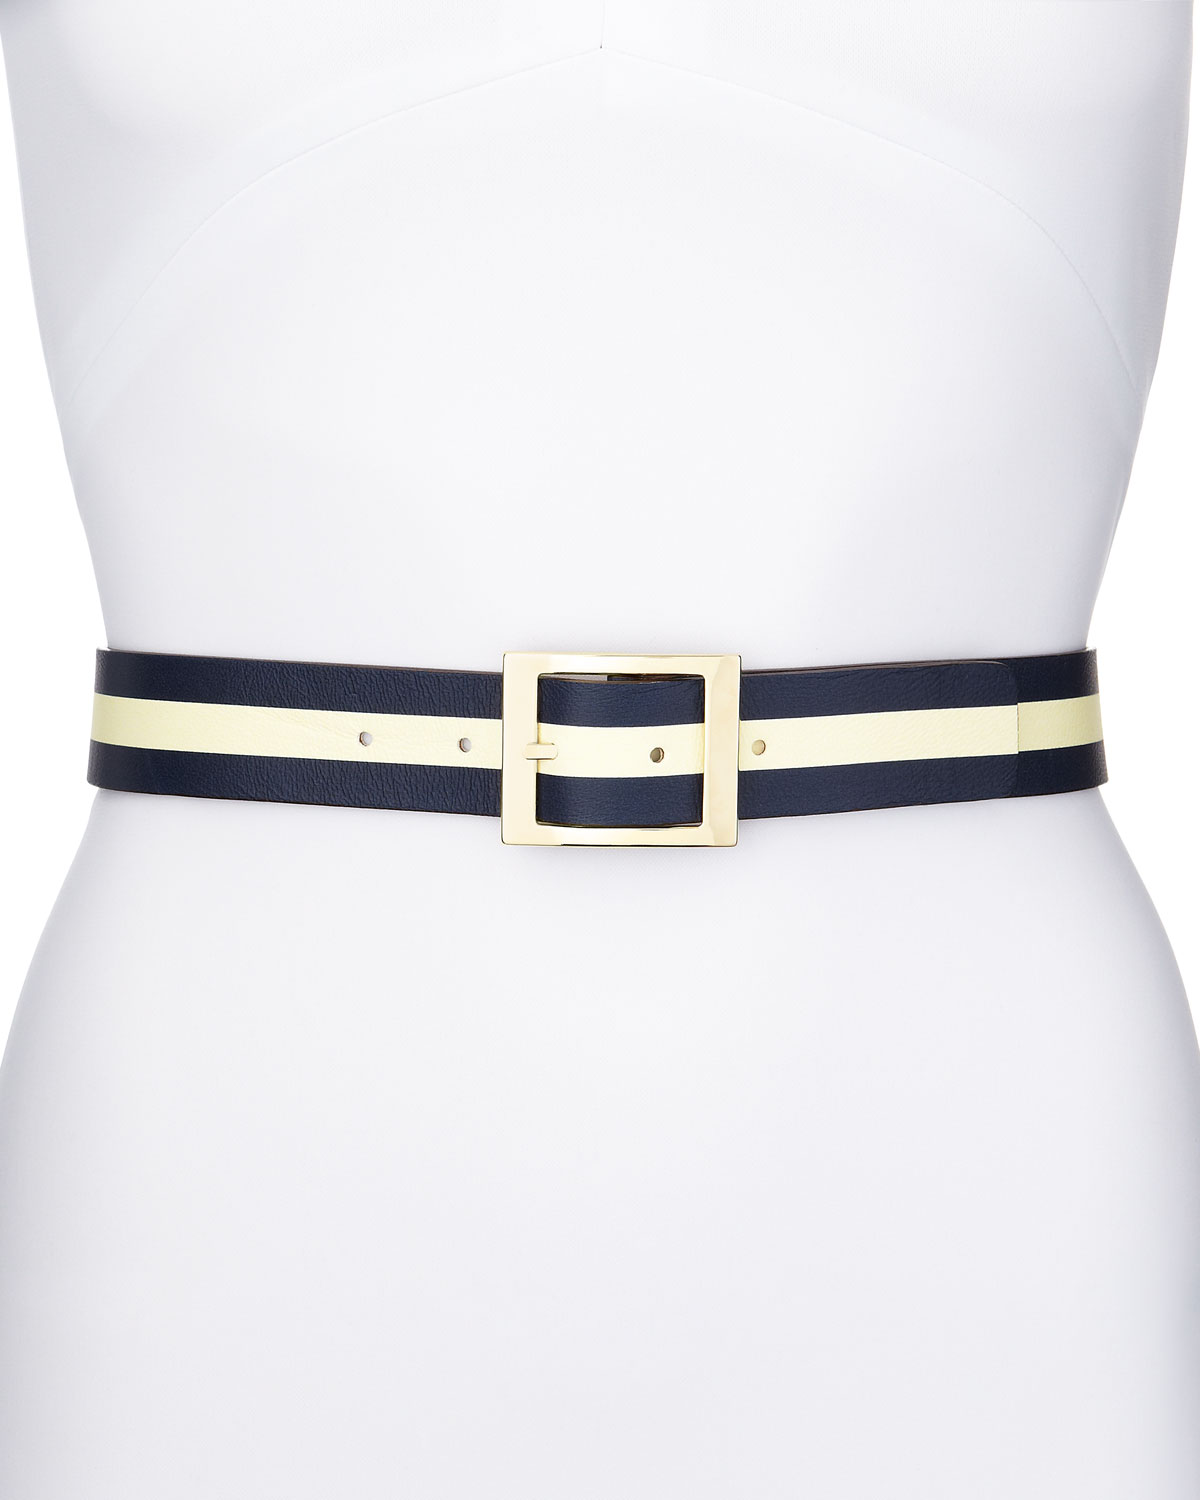 jeans reversible dot/stripe belt   kate spade new york   Navy (SMALL)